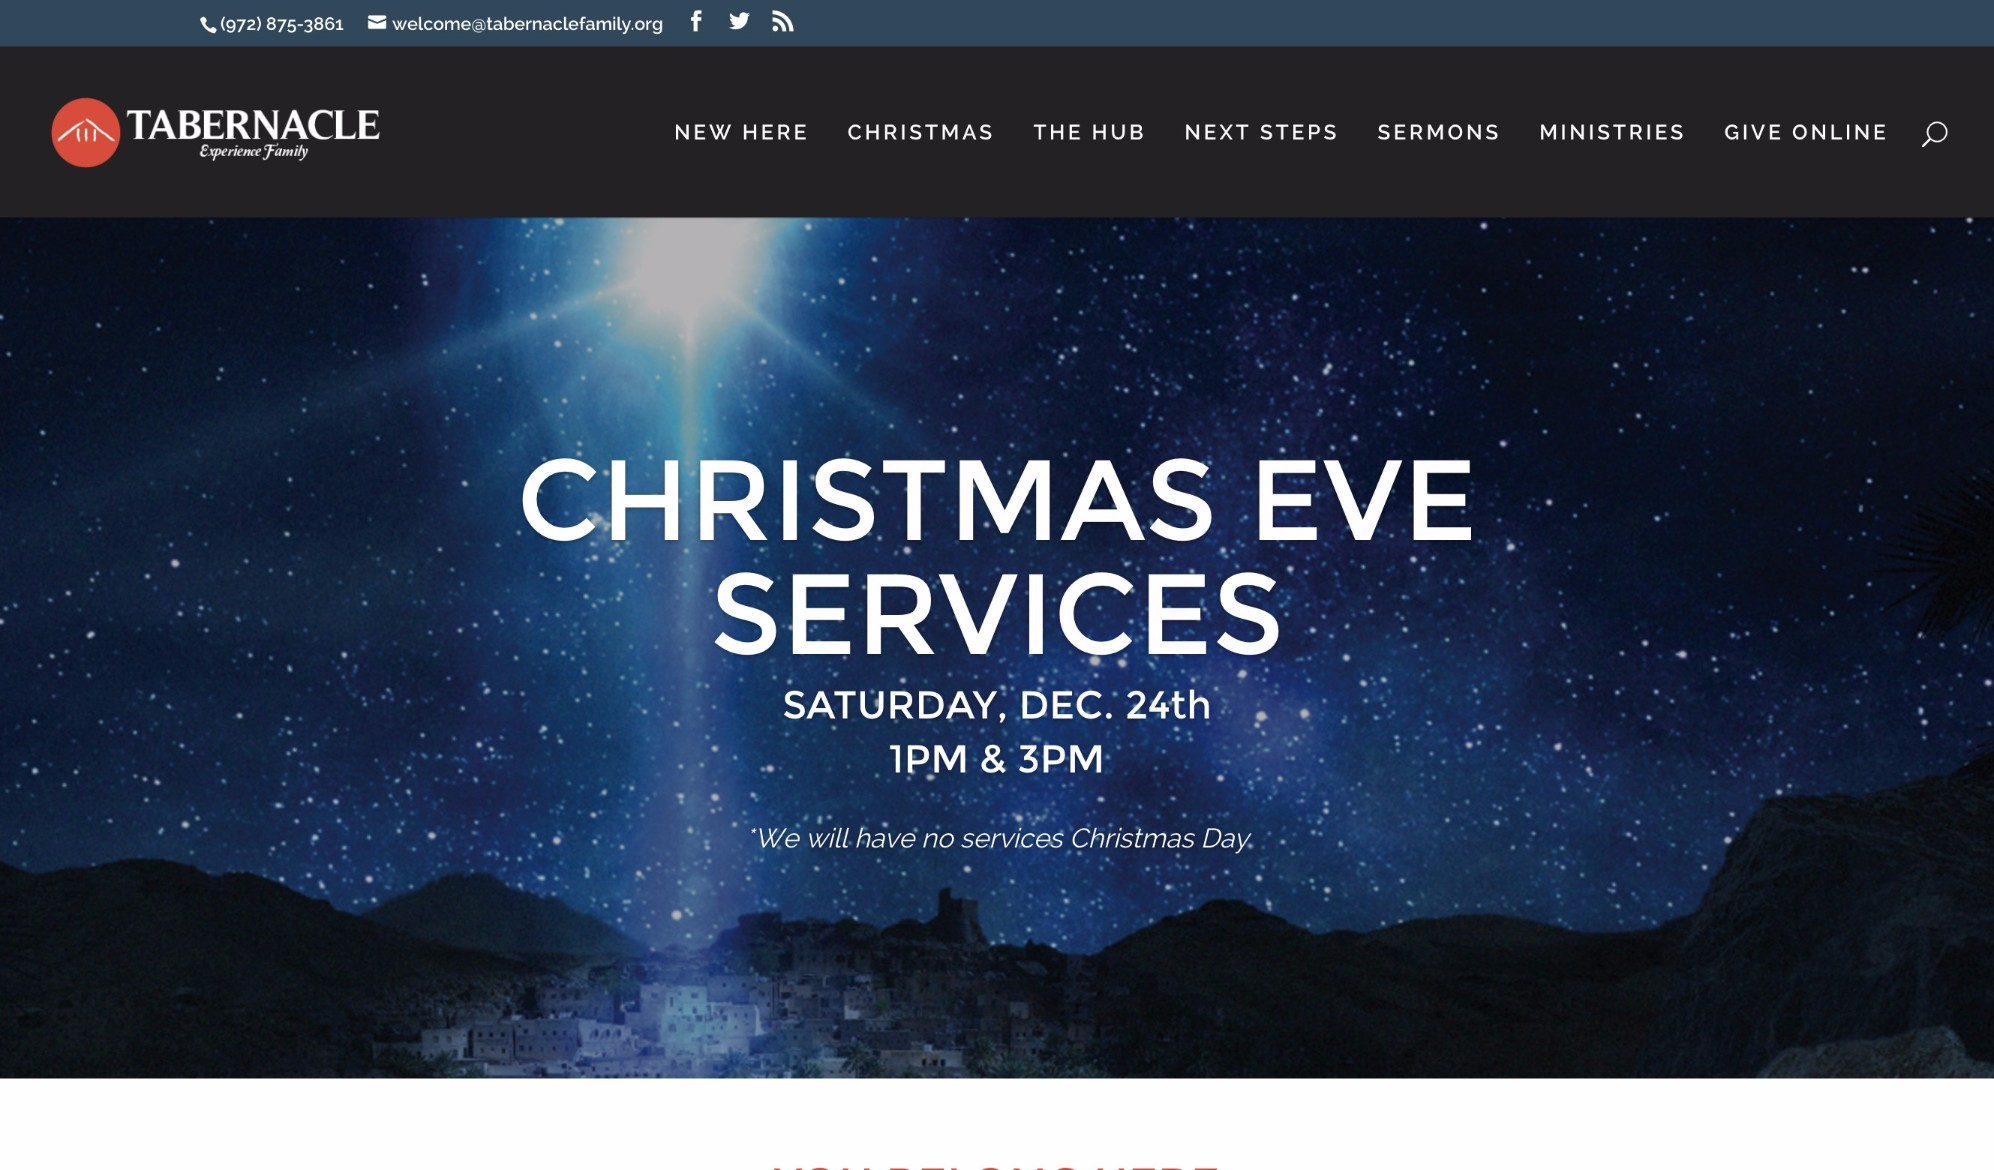 Buy Here Pay Here Knoxville >> 18 Powerful Examples of Churches Using the Divi Theme ...